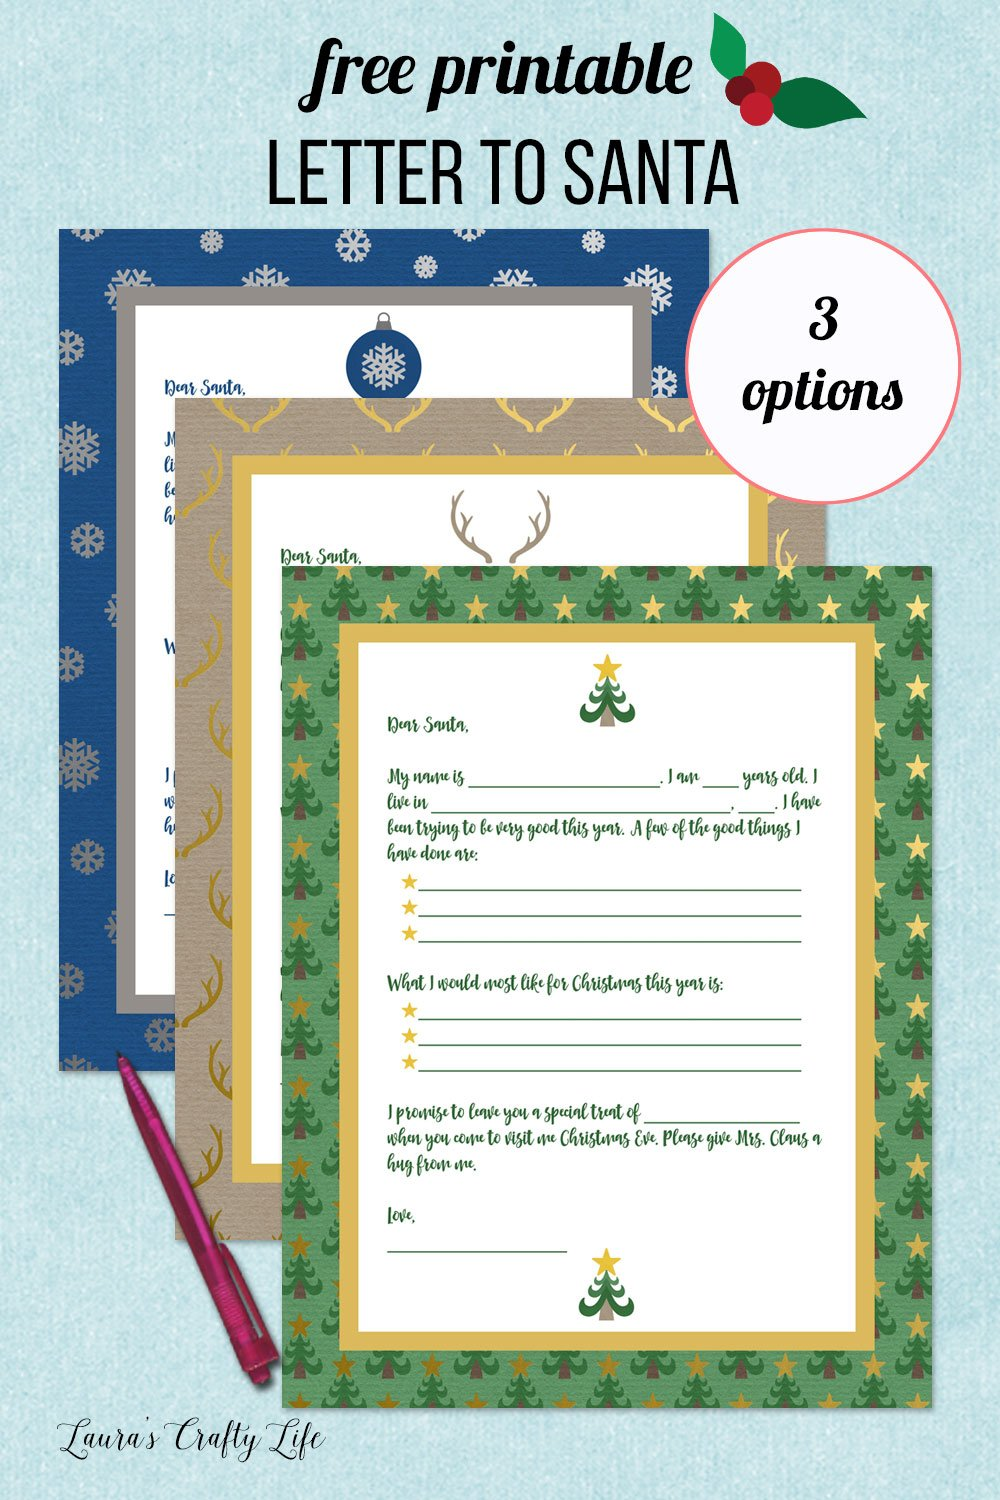 free printable letter to Santa - Christmas tree, deer antler, or snowflakes